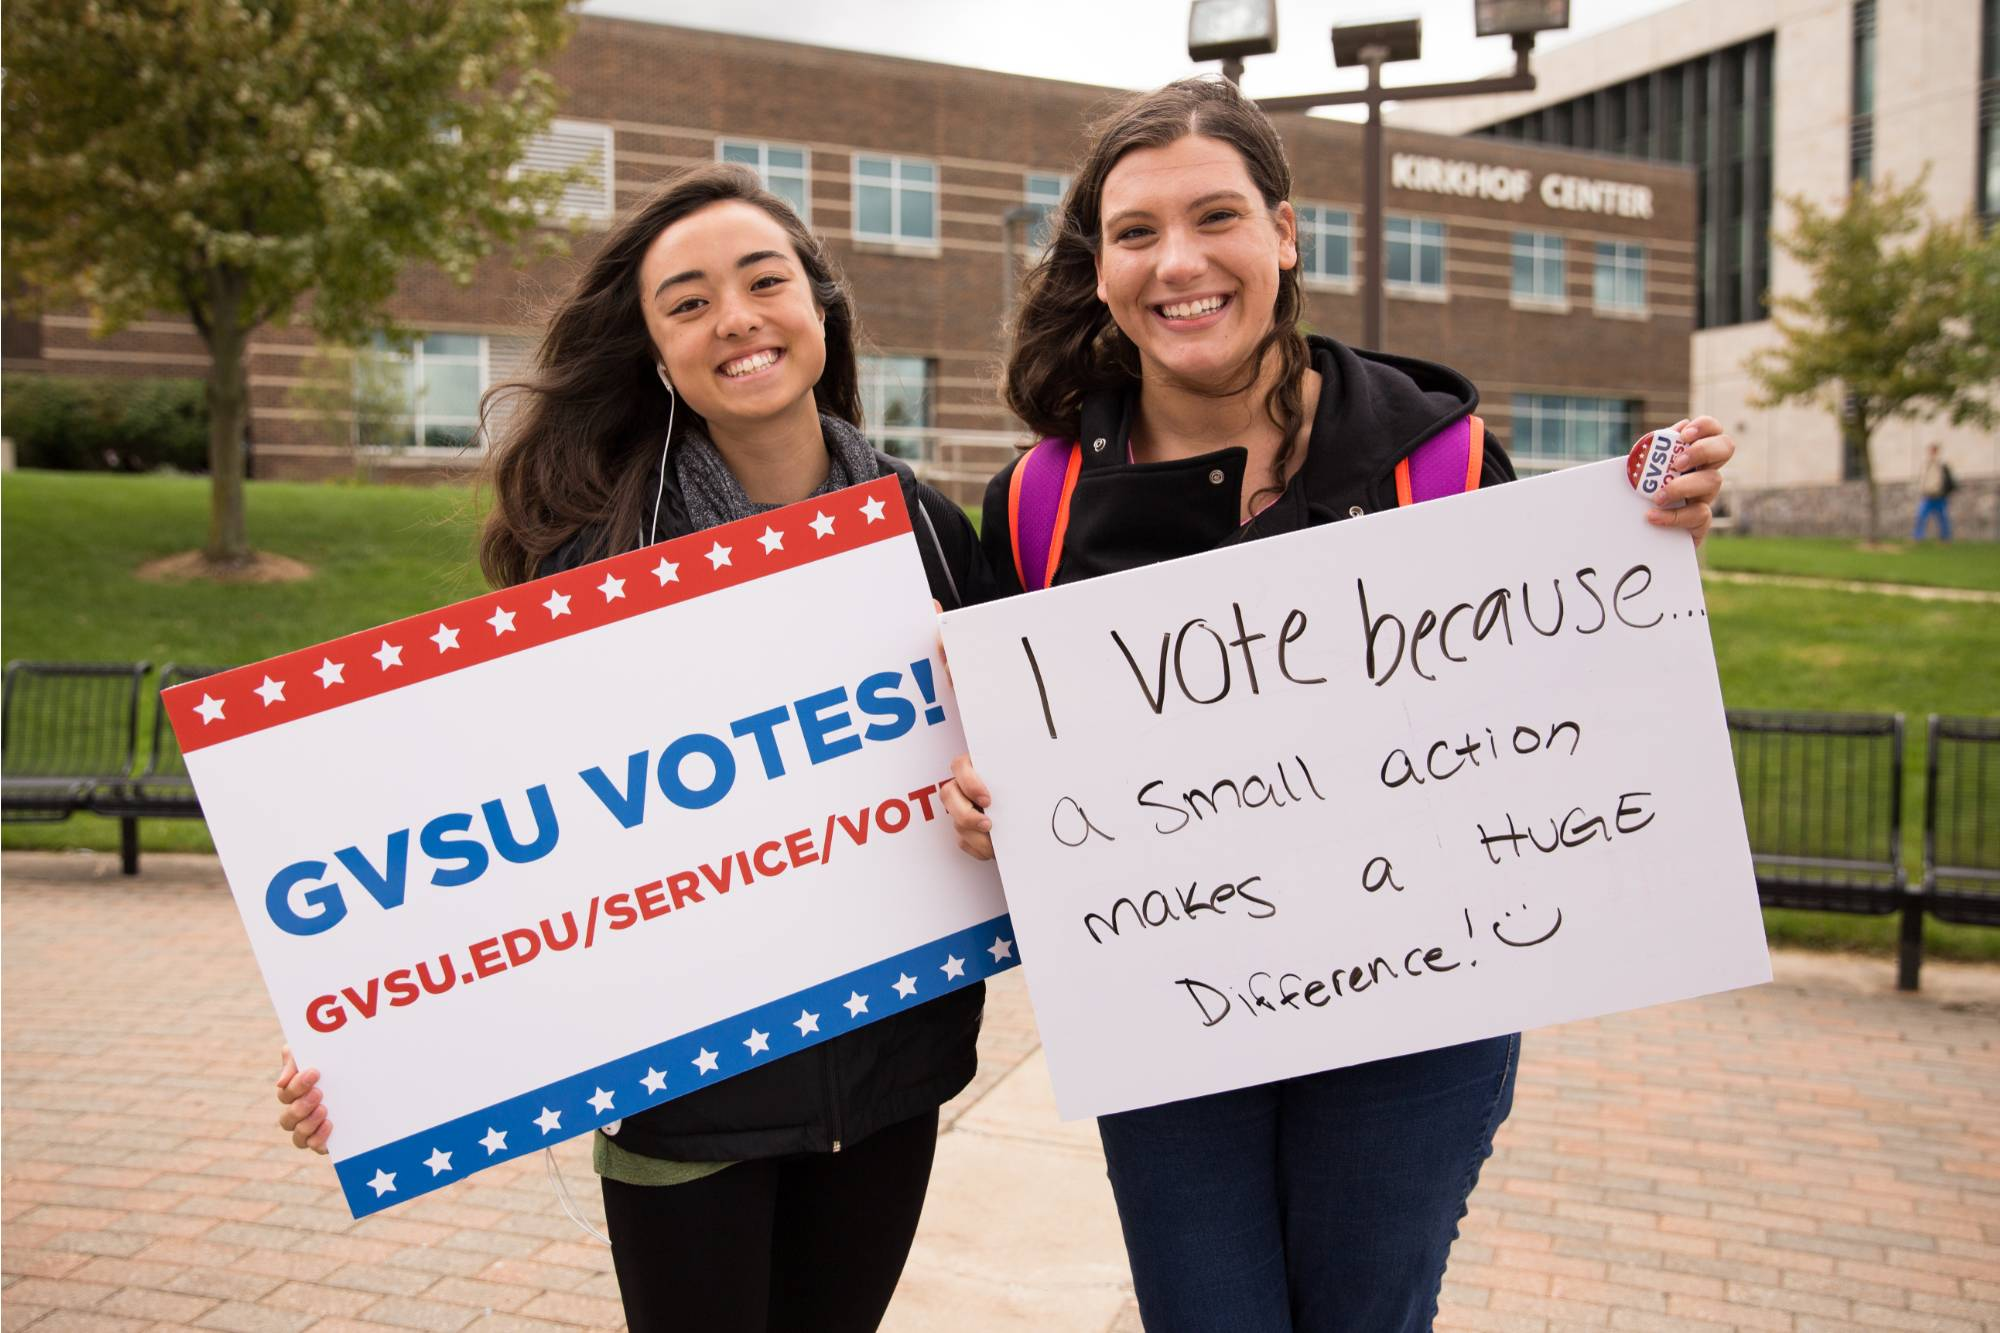 Two girls holding up GVSU votes signs